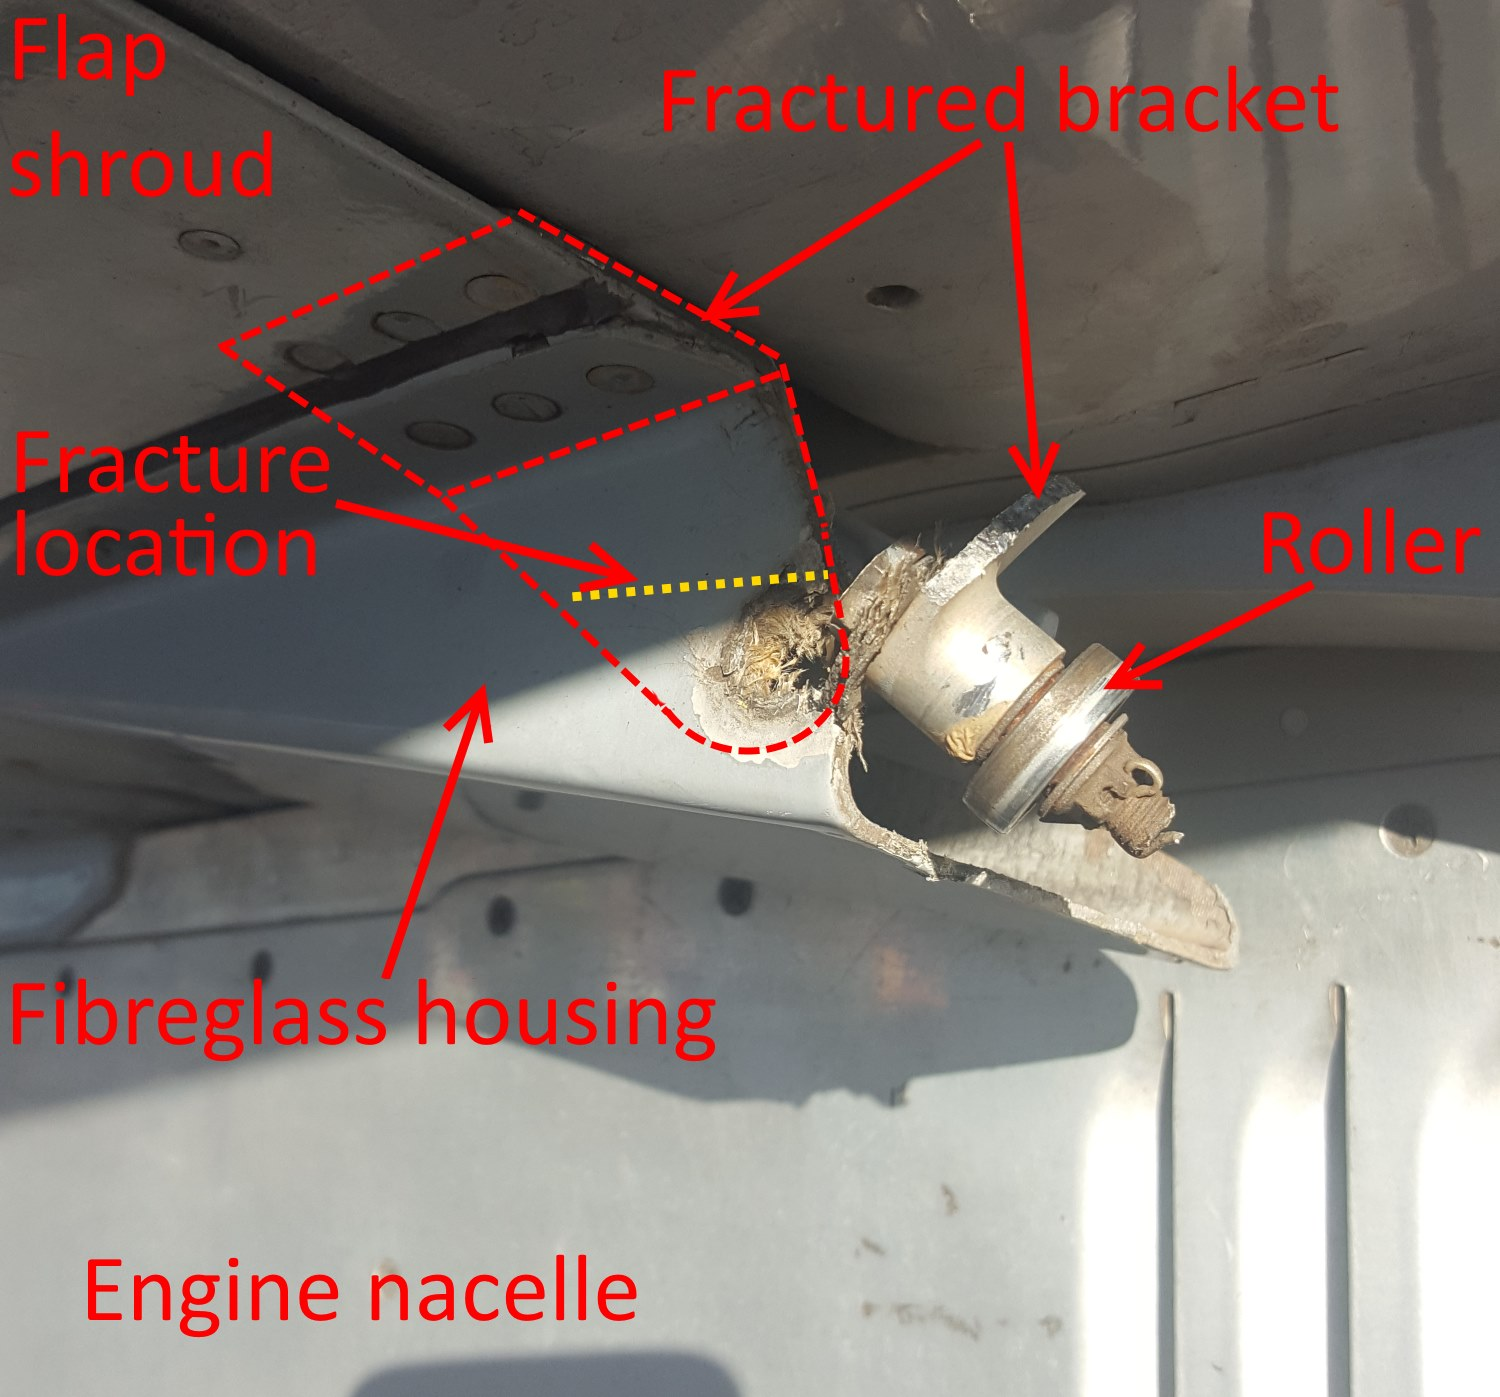 Figure 1: Bracket on the aircraft after it had failed. Most of the bracket is obscured by the fibreglass housing. Its outline is shown by the dotted red line.